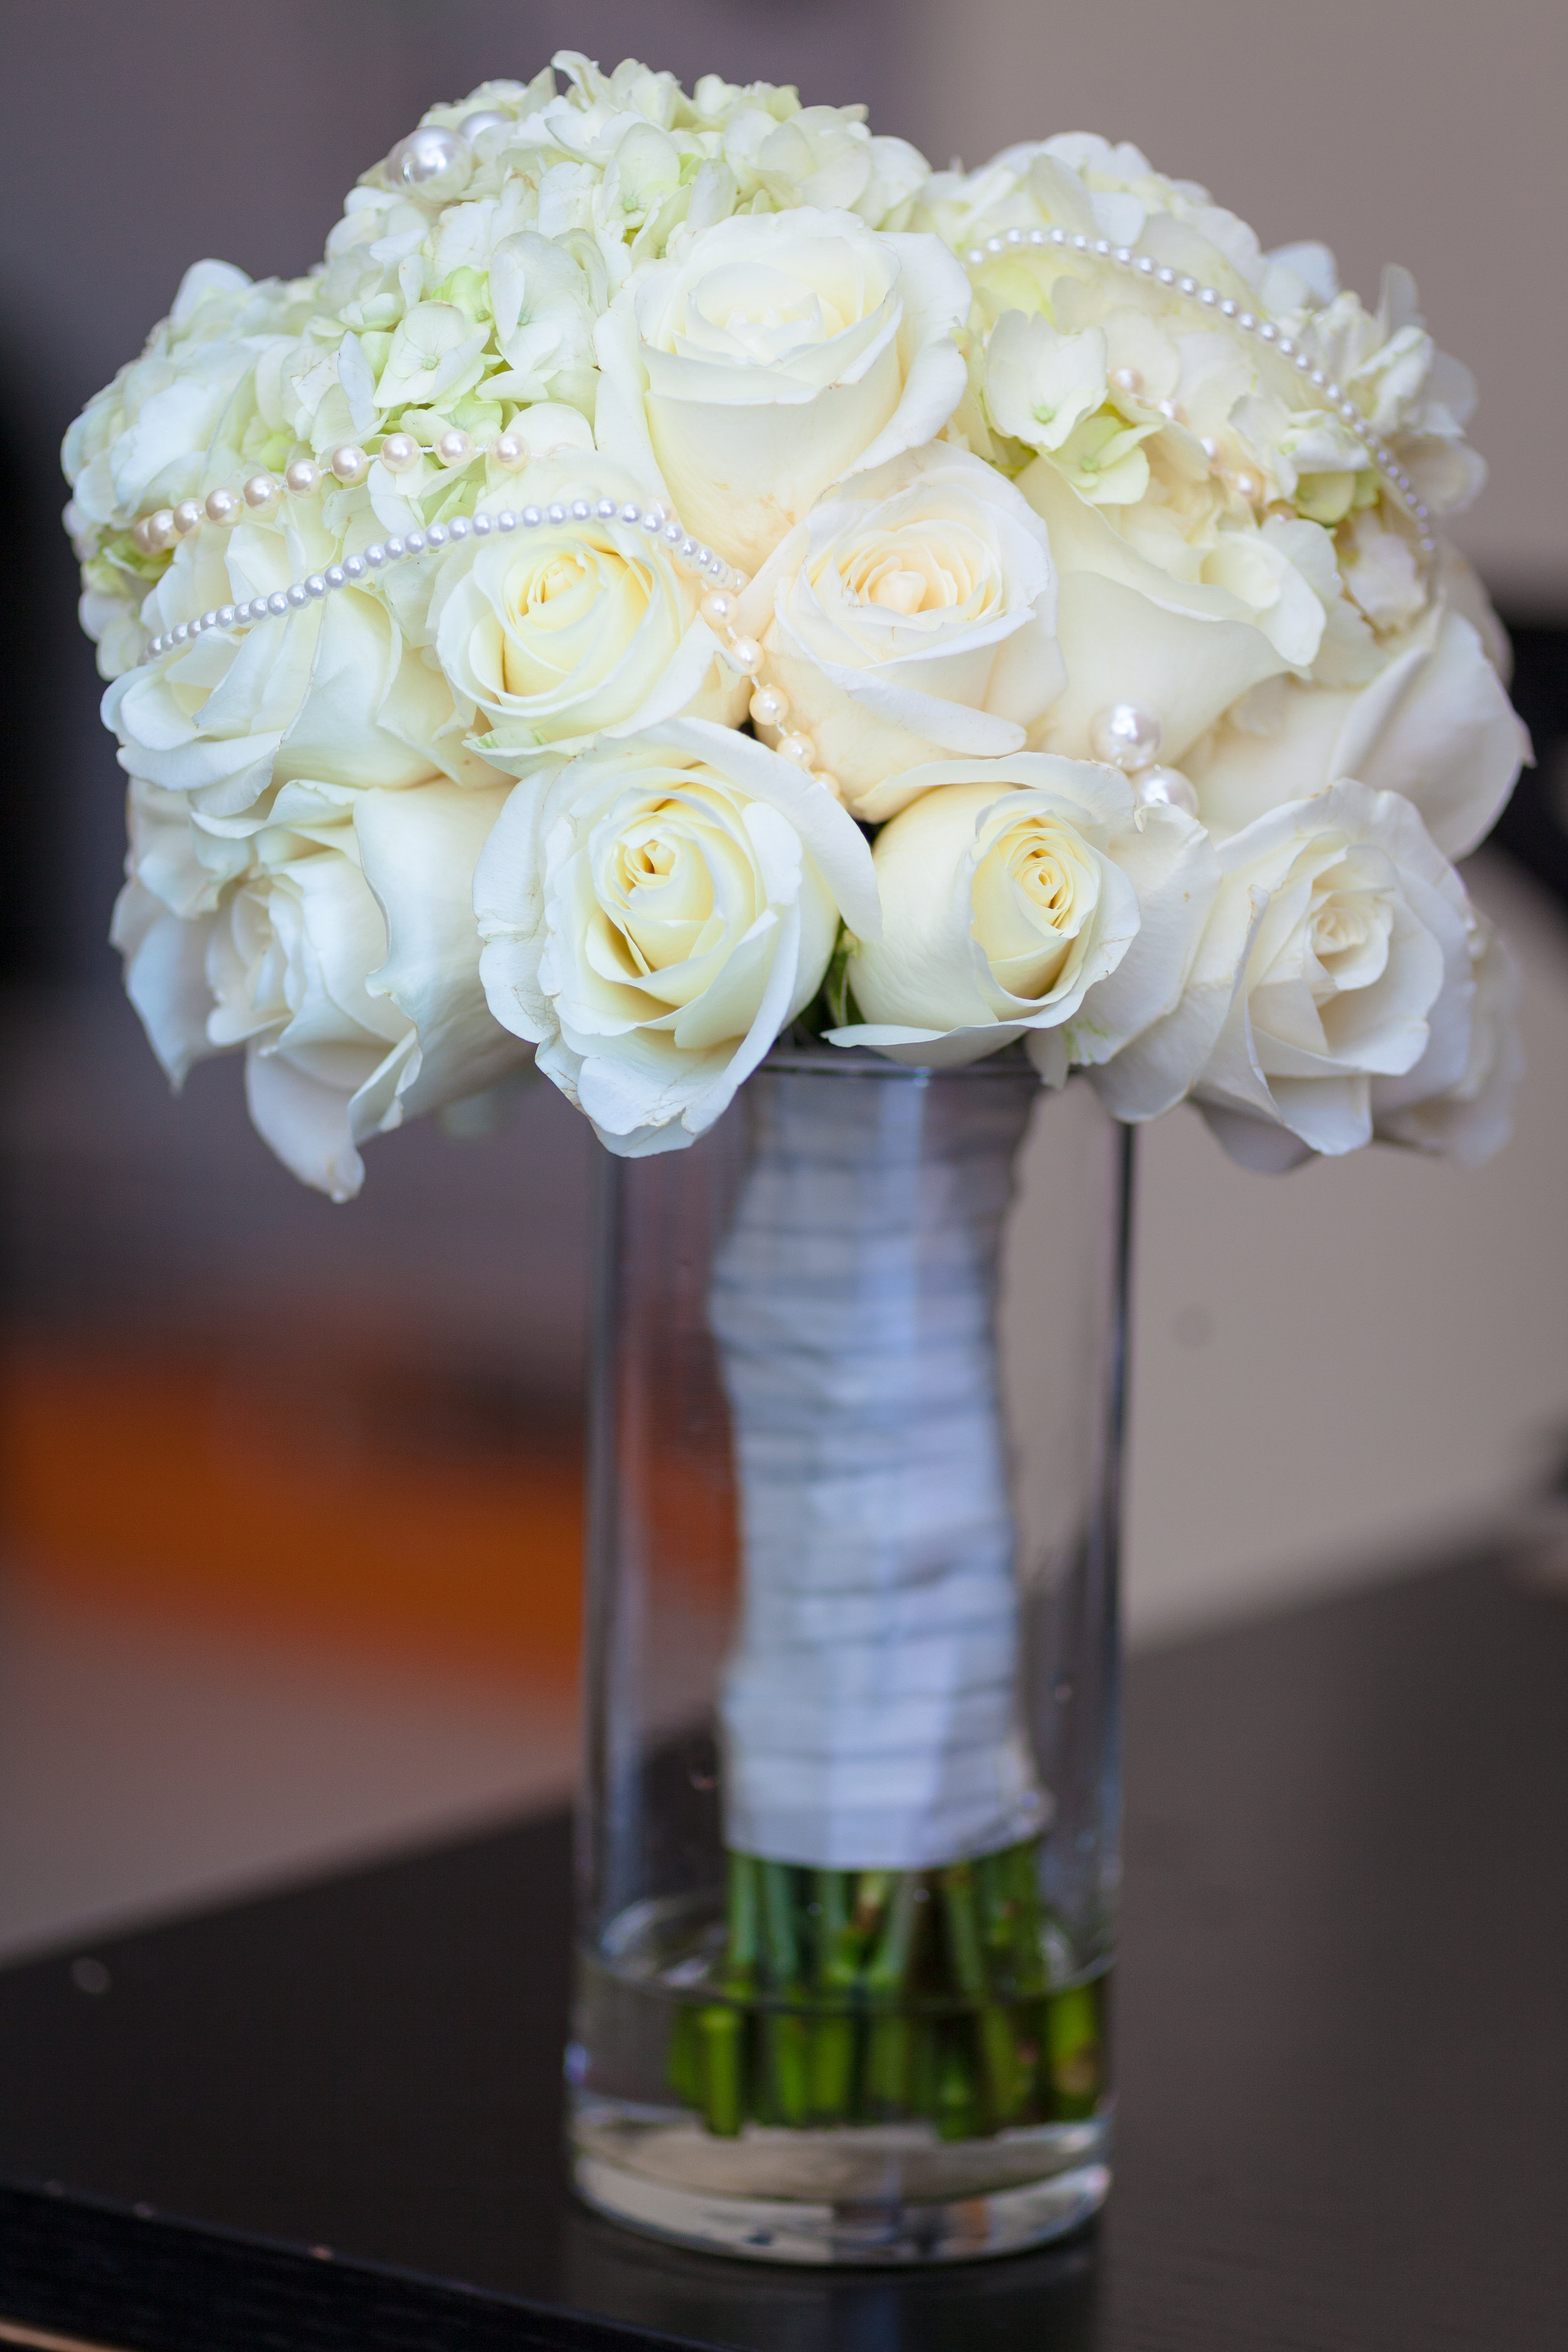 Bouquet created by Evelisa Floral & Design, Photographed by Dpsnapsphotography